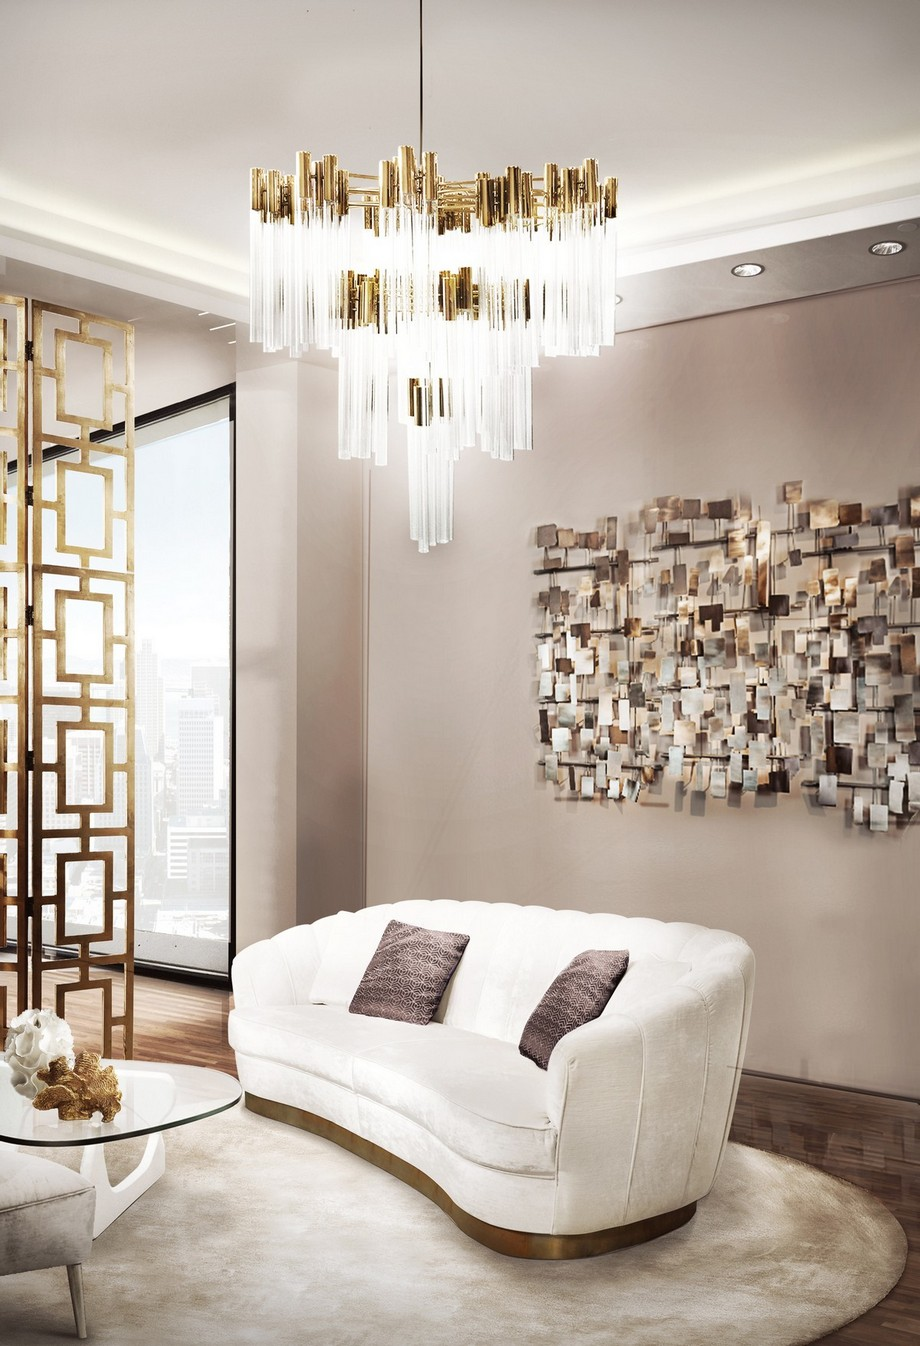 Ideas para Decorar: Tendencias de Illuminación de lujo 2019 ideas para decorar Ideas para Decorar: Tendencias de Illuminación de lujo 2019 burj chandlier